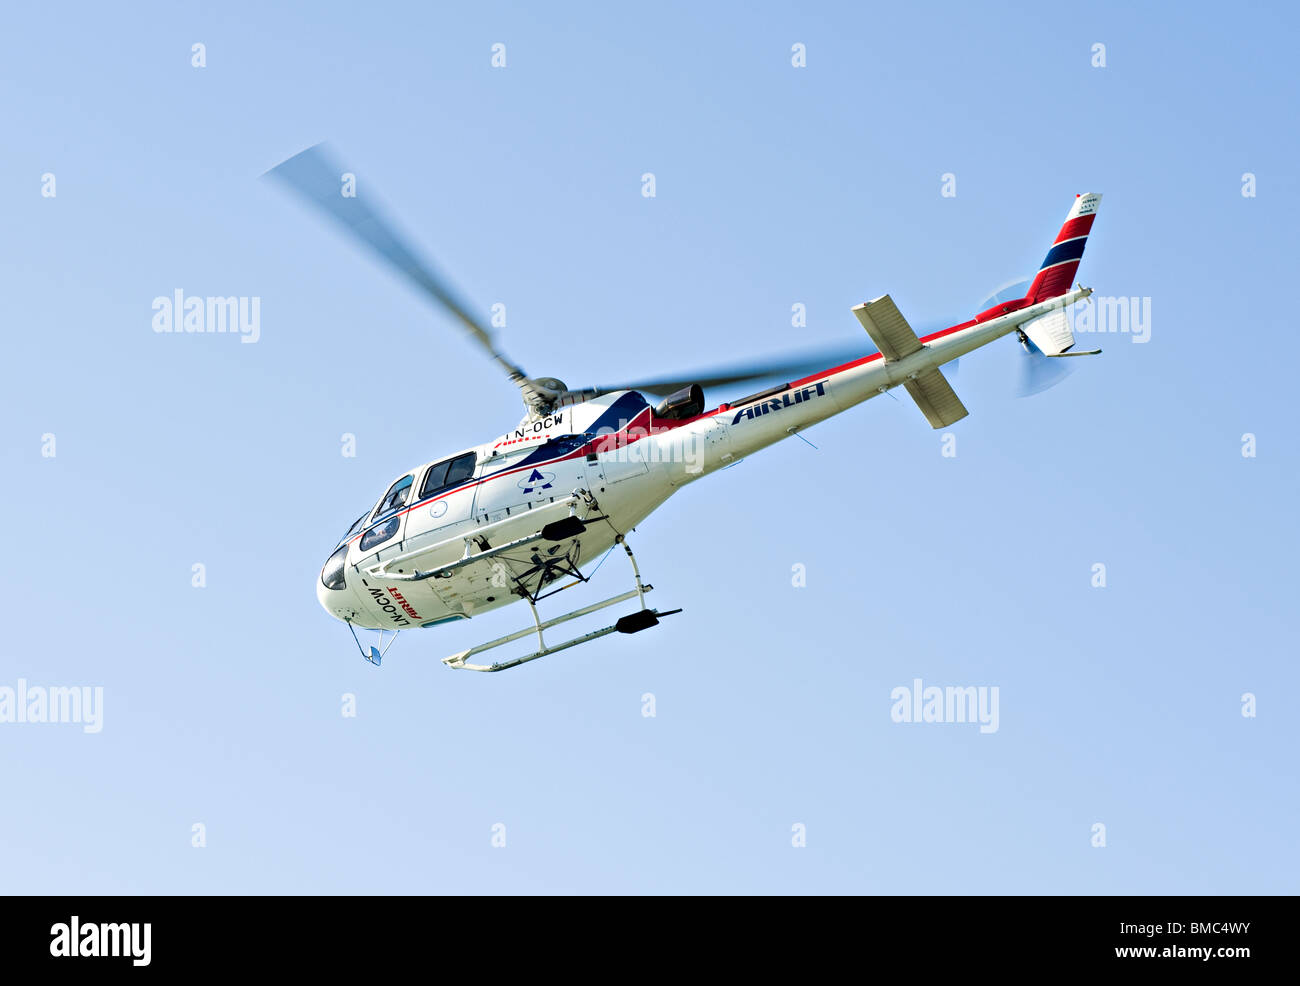 Airlift Helicopter AS Eurocopter 350B LN-OCW Taking Off in Clear Skies in Balestrand Sognefjord Sogn Norway - Stock Image